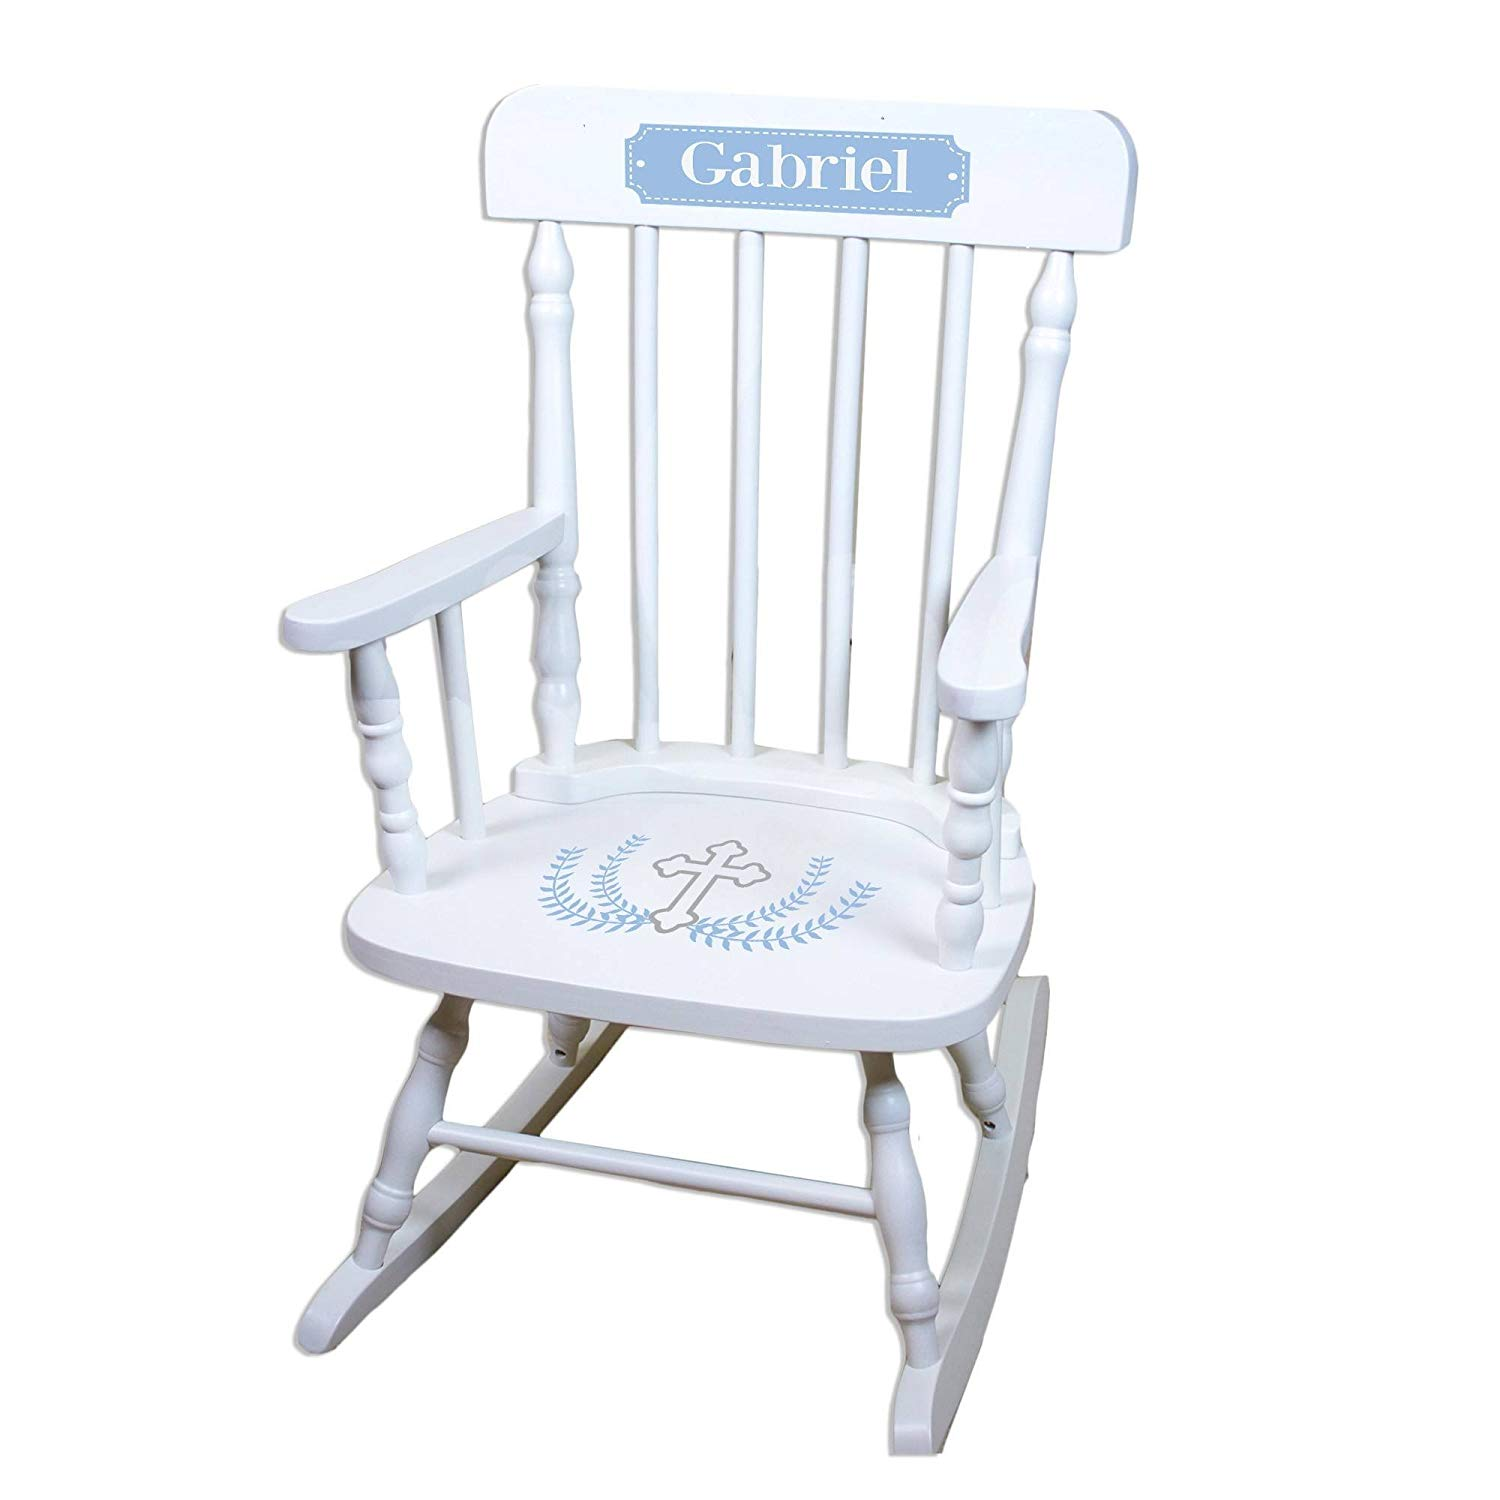 MyBambino Personalized Cross Garland Light blue White Wooden Childrens Rocking Chair